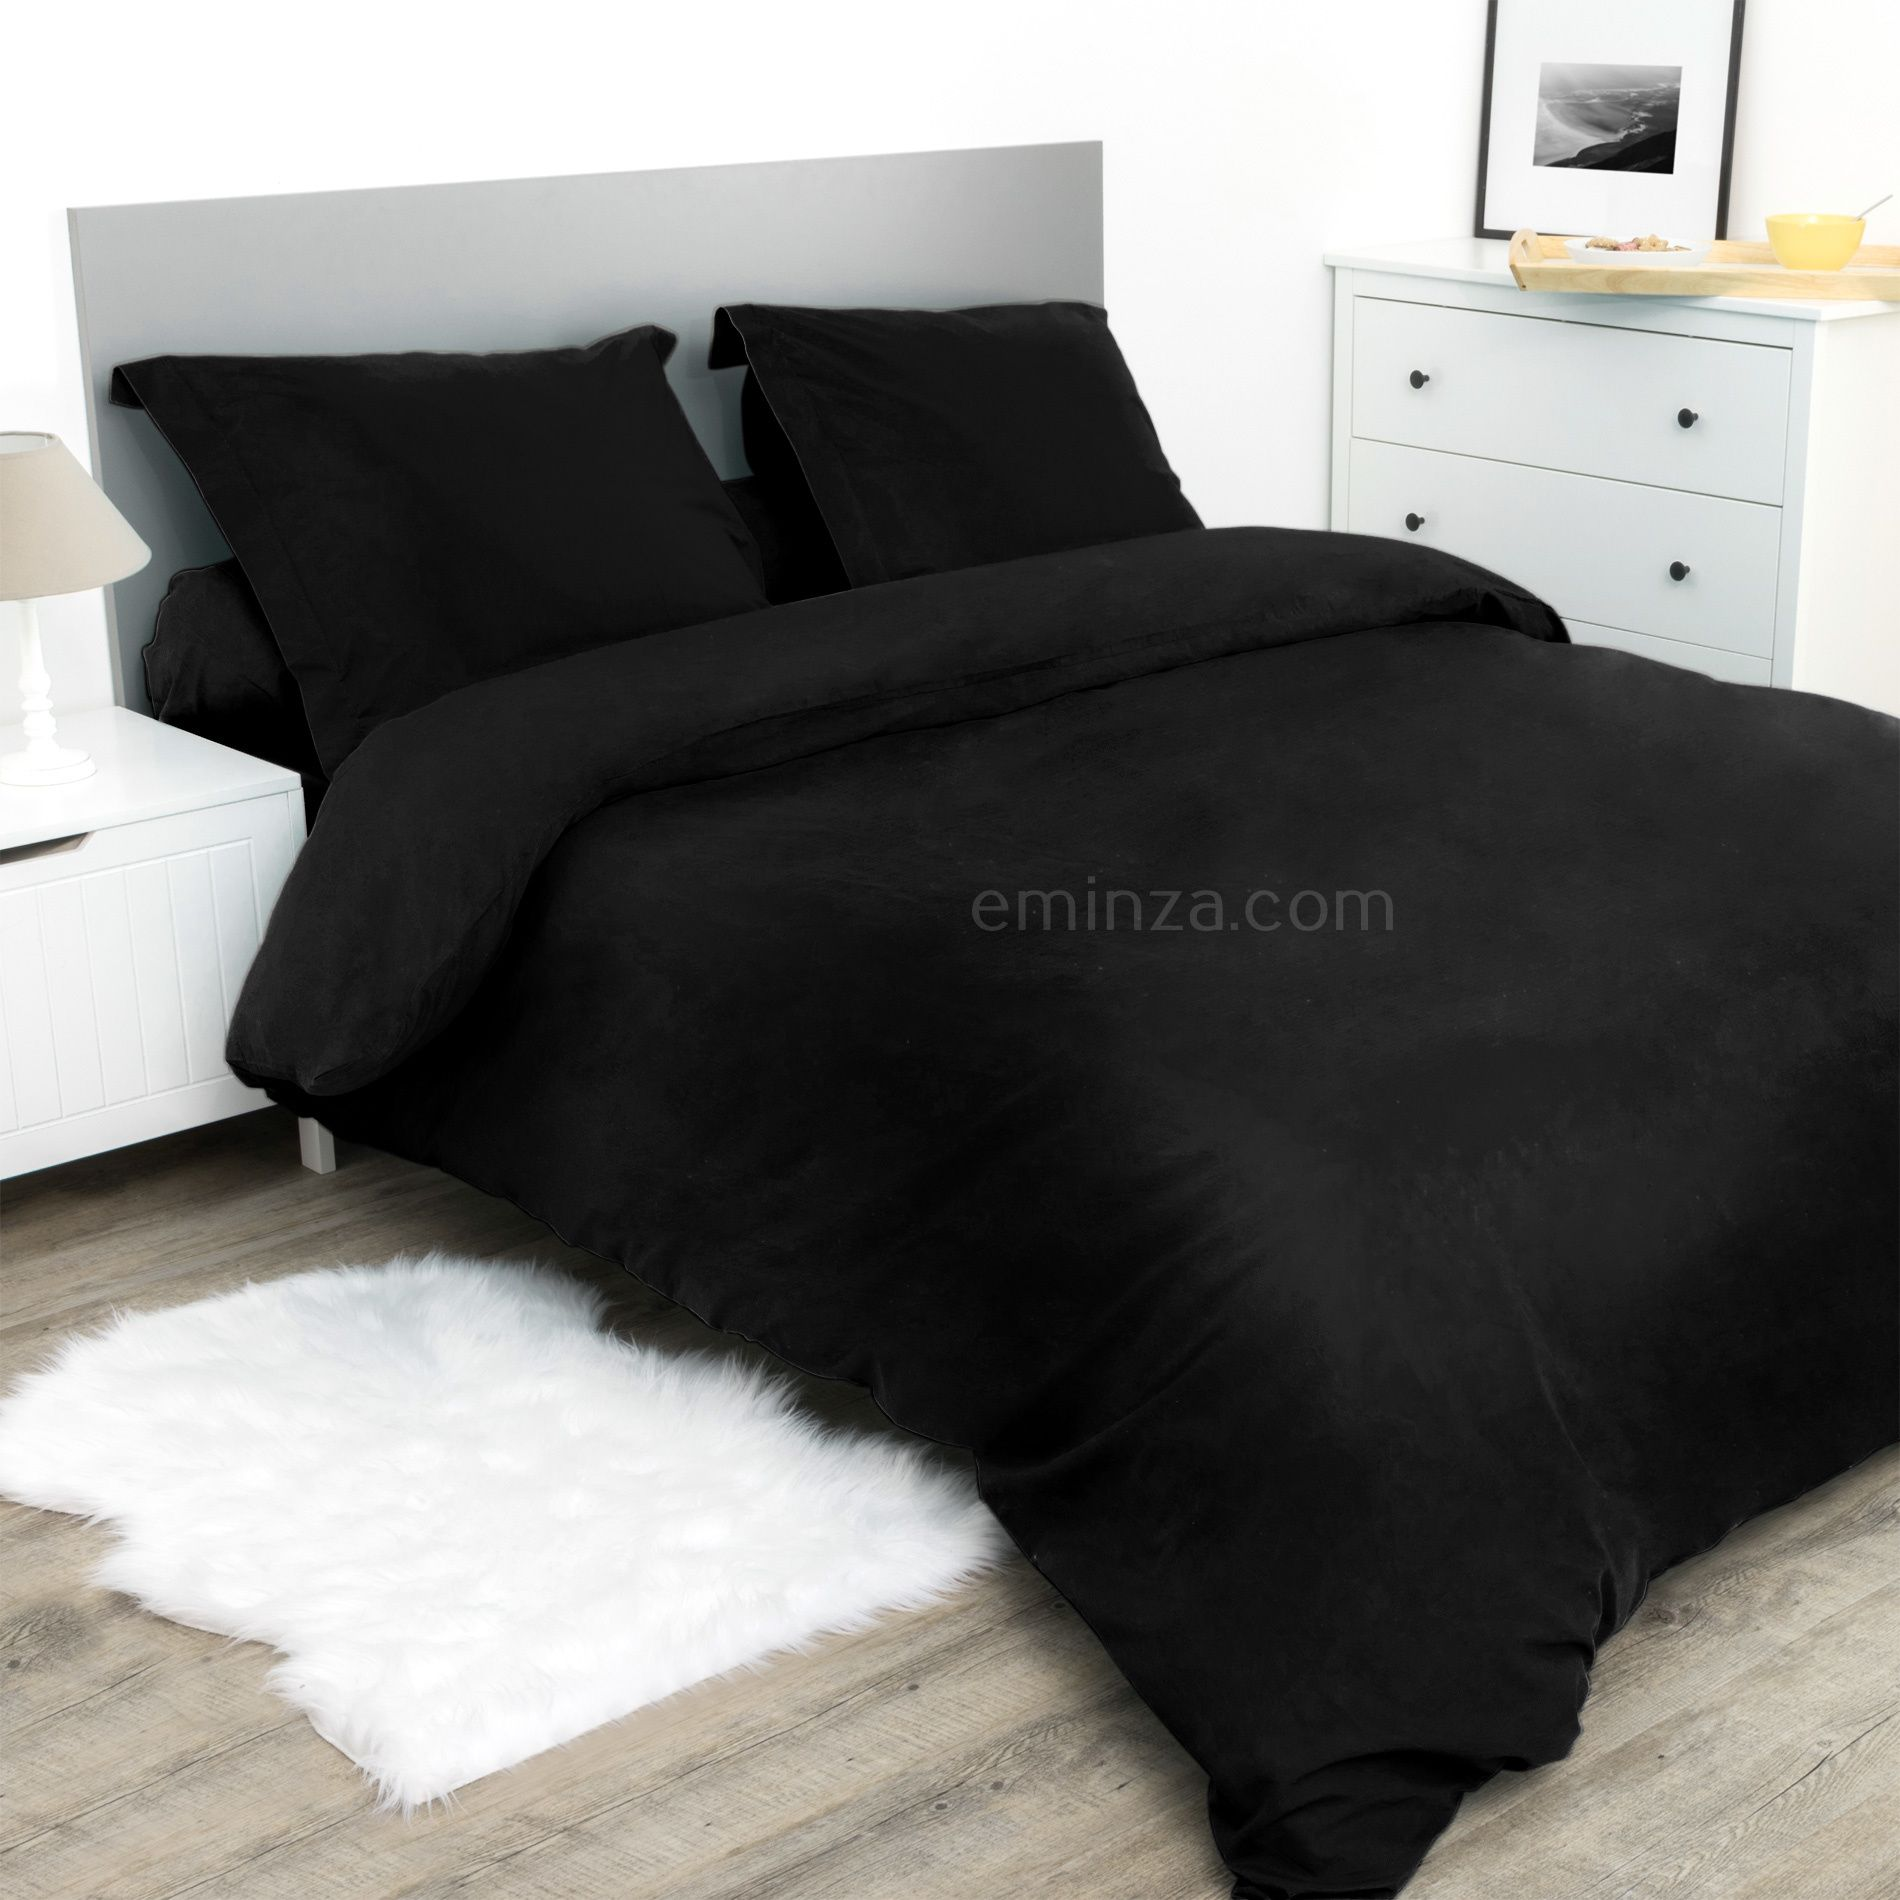 drap housse 90 cm confort noir drap housse eminza. Black Bedroom Furniture Sets. Home Design Ideas